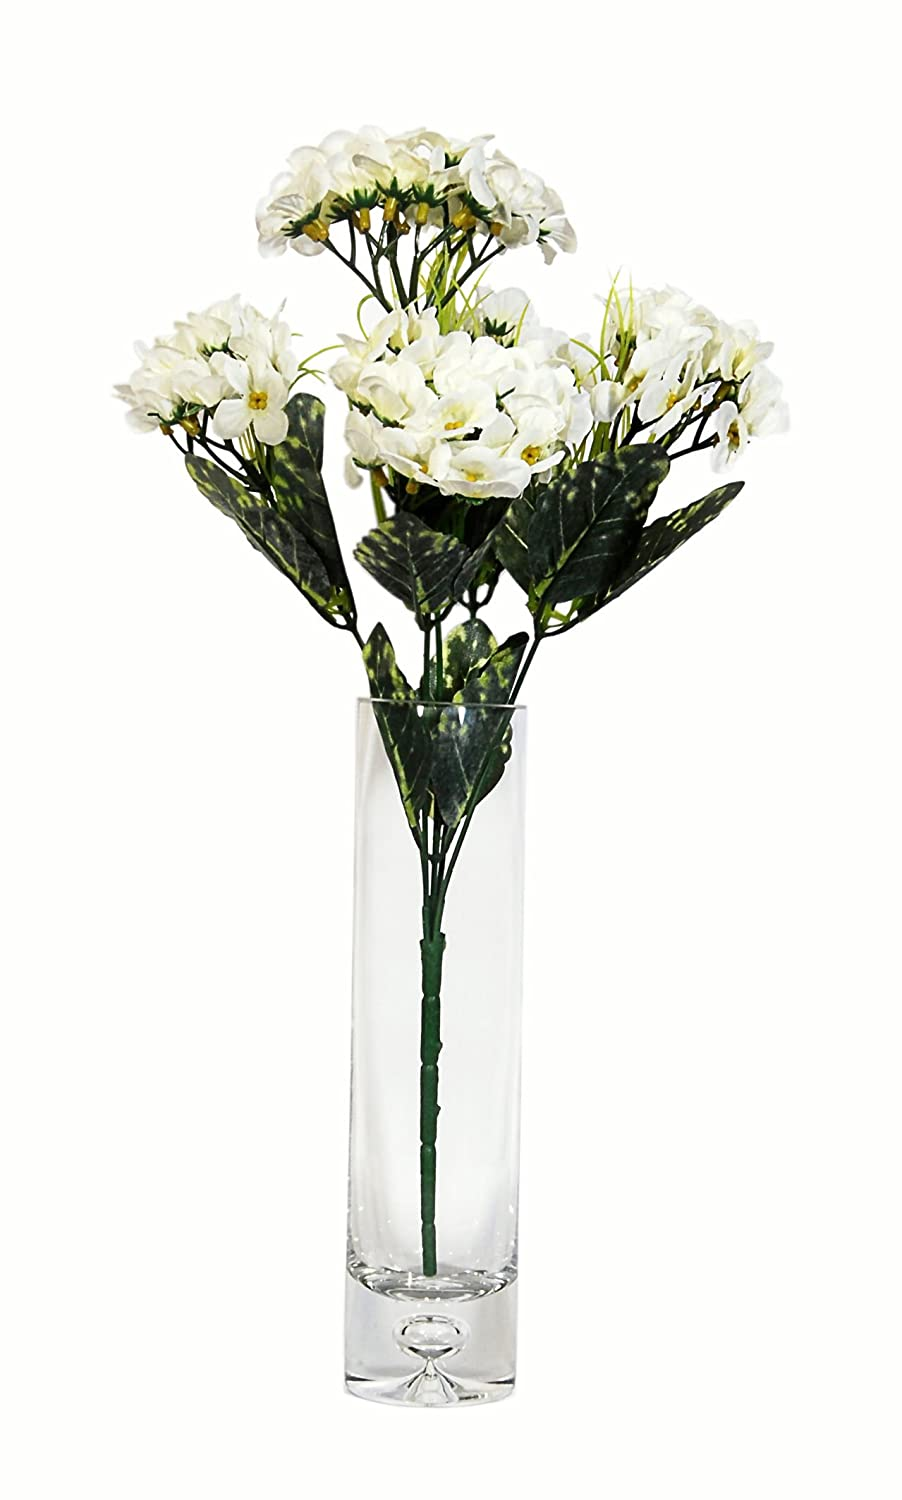 Buy Orchard Artificial Zinnia Flowers Bunch In A Glass Flower Vase Number 9 28cm X 28cm X 44cm Online At Low Prices In India Amazon In